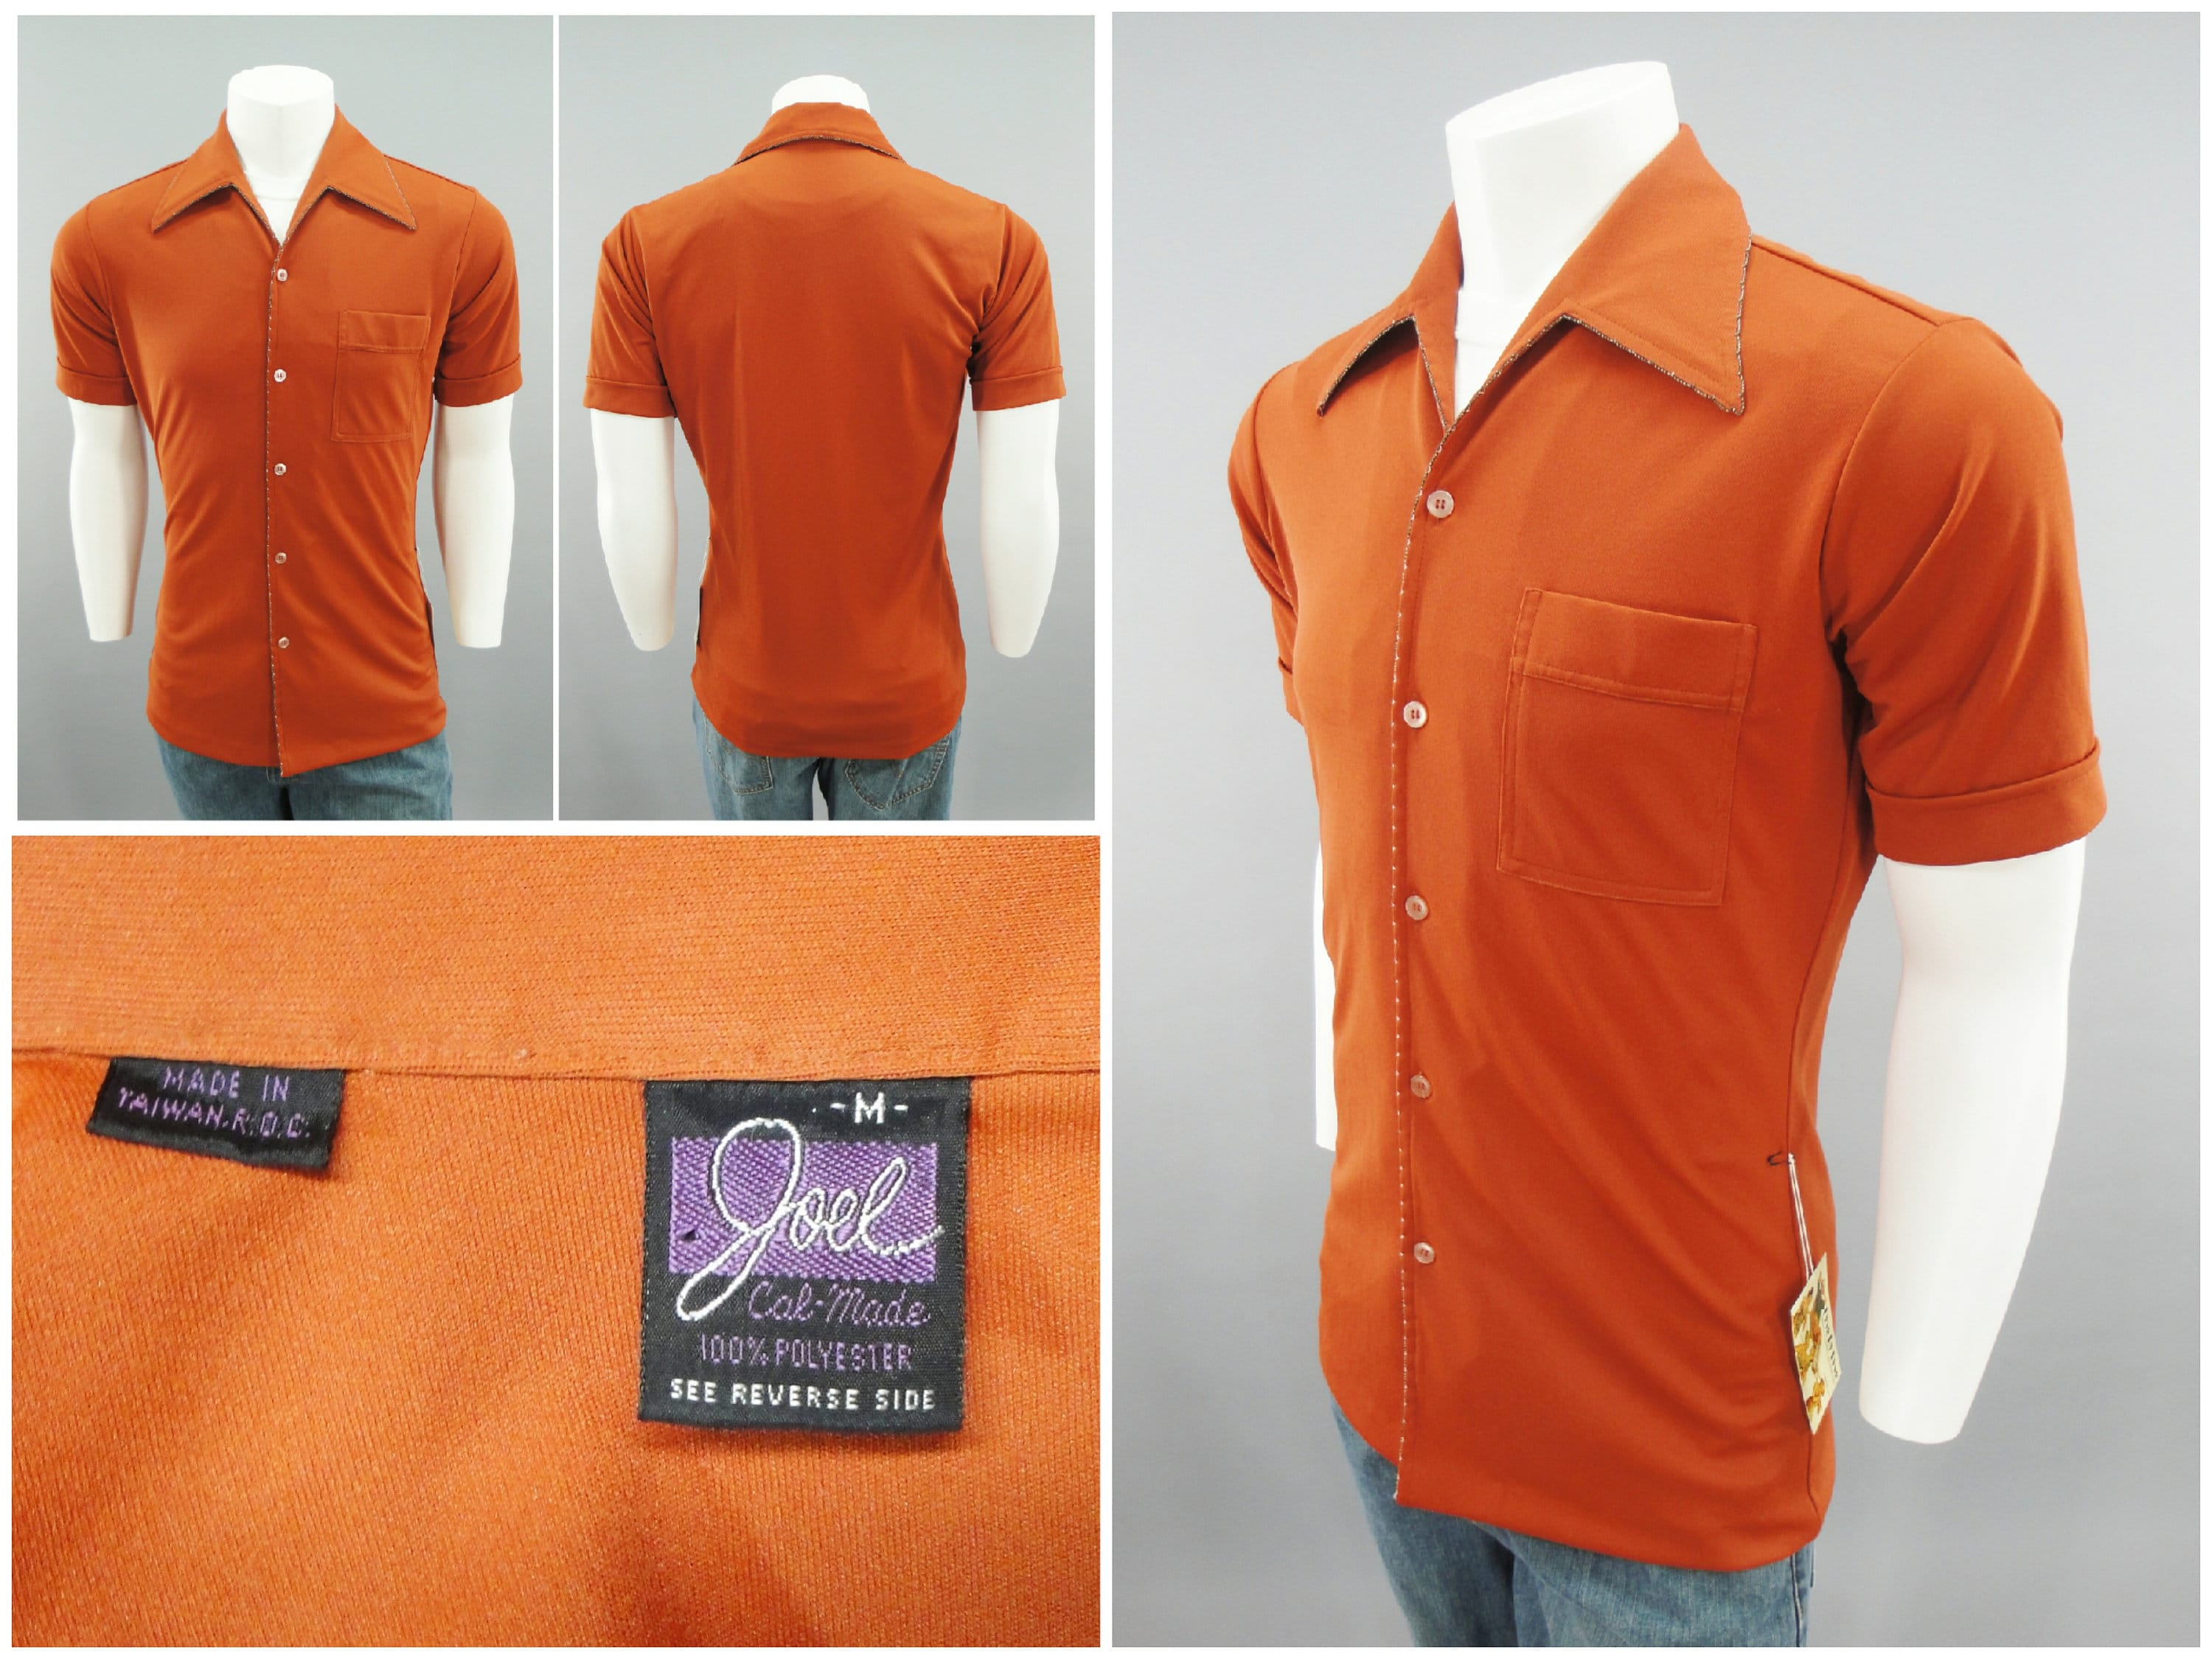 1970s Mens Shirt Styles – Vintage 70s Shirts for Guys 1970S Vintage Short Sleeve Polyester Stretch Fit Disco Casual Shirt With Orange Piped Fly Collar By Joel Cal-Made, Mens Size Xs 34-36 $0.00 AT vintagedancer.com